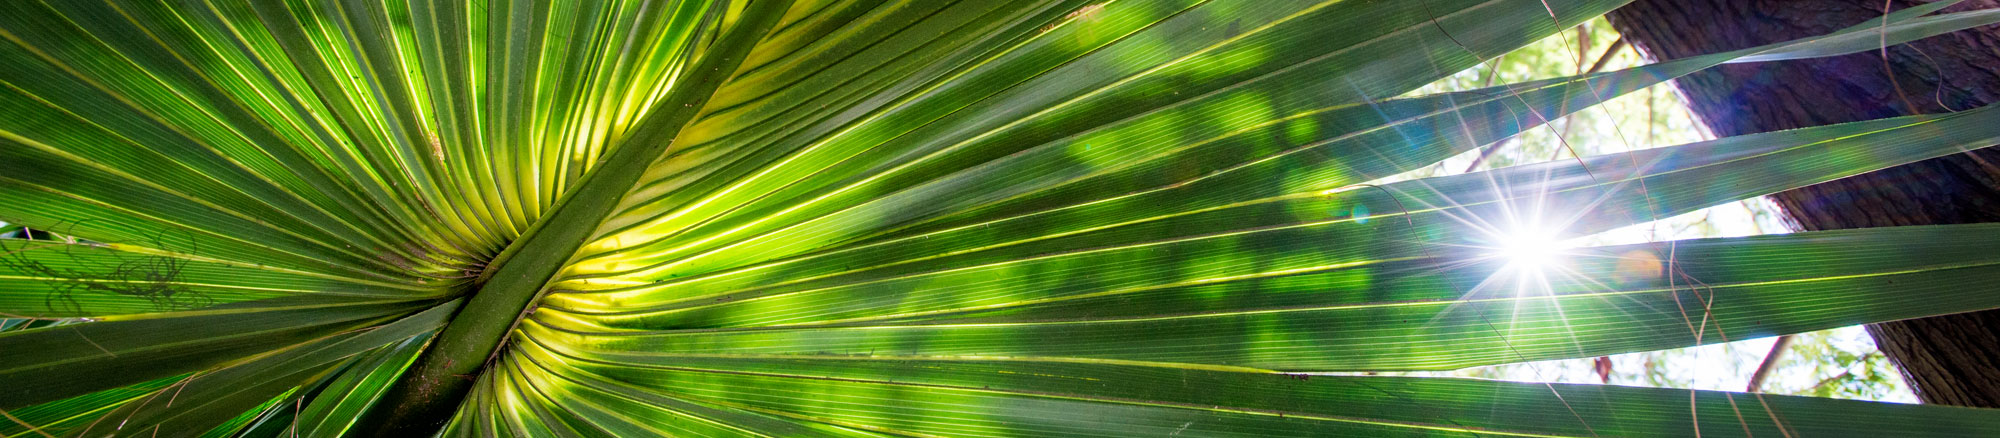 Sunlight streaming the leaves of a fanned out palm leaf